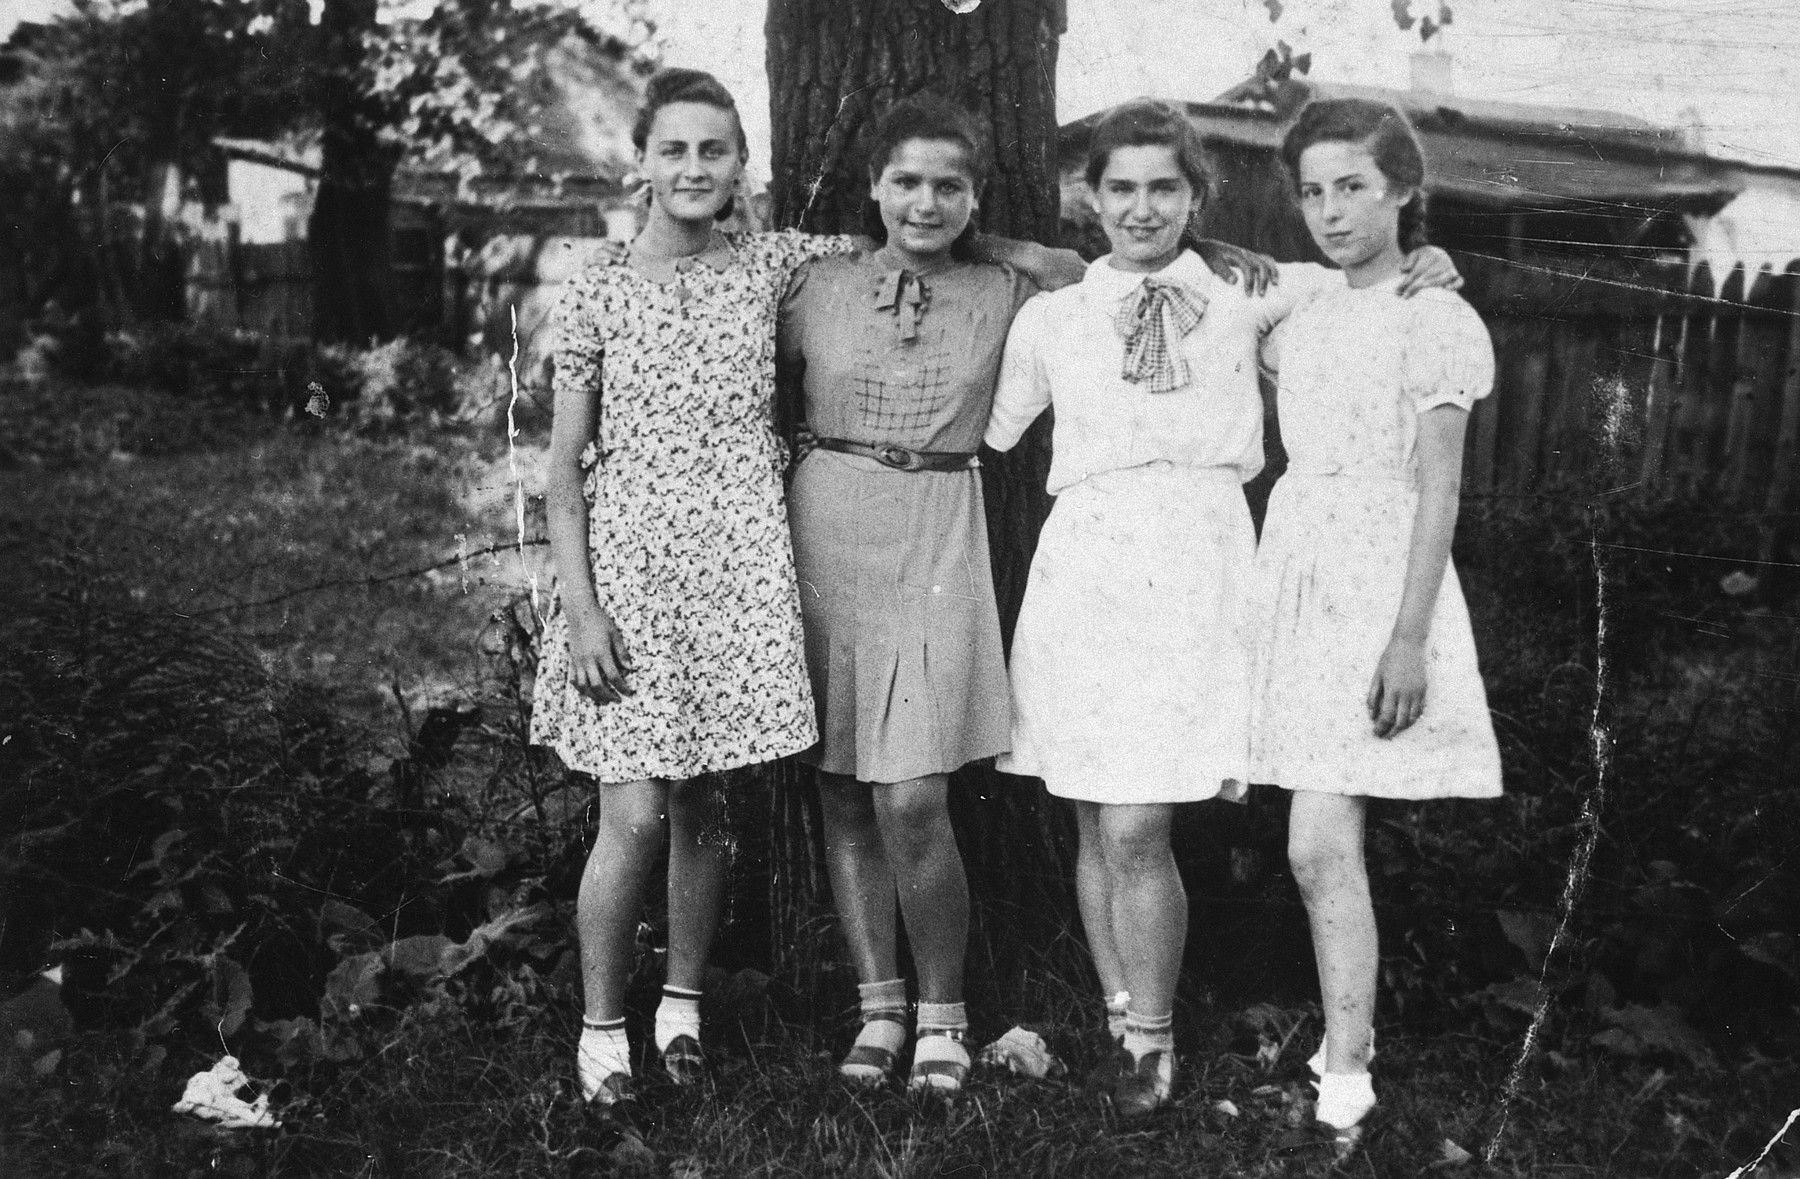 Four Jewish girls stand outside next to a fence in the Sosnowiec ghetto.  From left: Blimka Lipnicka; Gizia Melcer; Libgard Unger; Sonia Rozenberg.